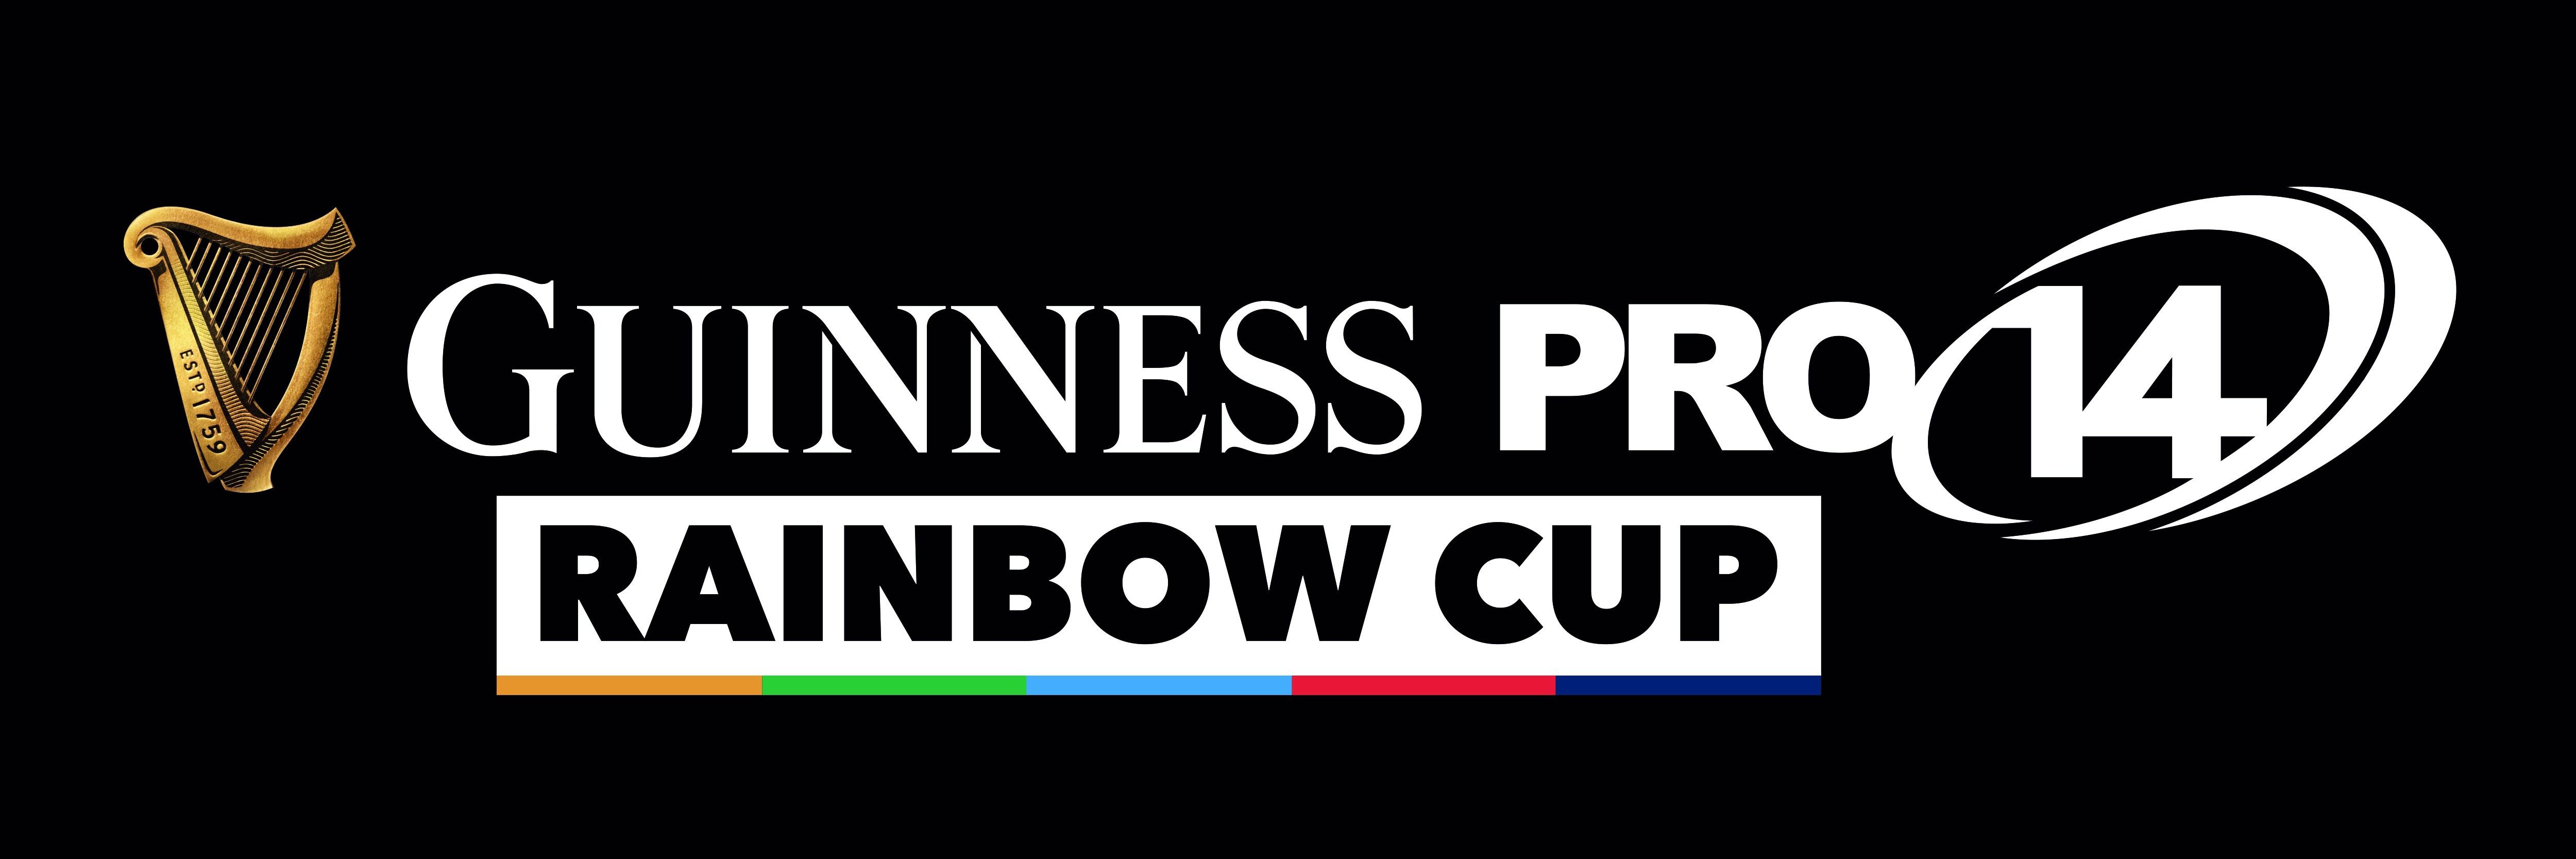 GUINNESS PRO14 RAINBOW CUP